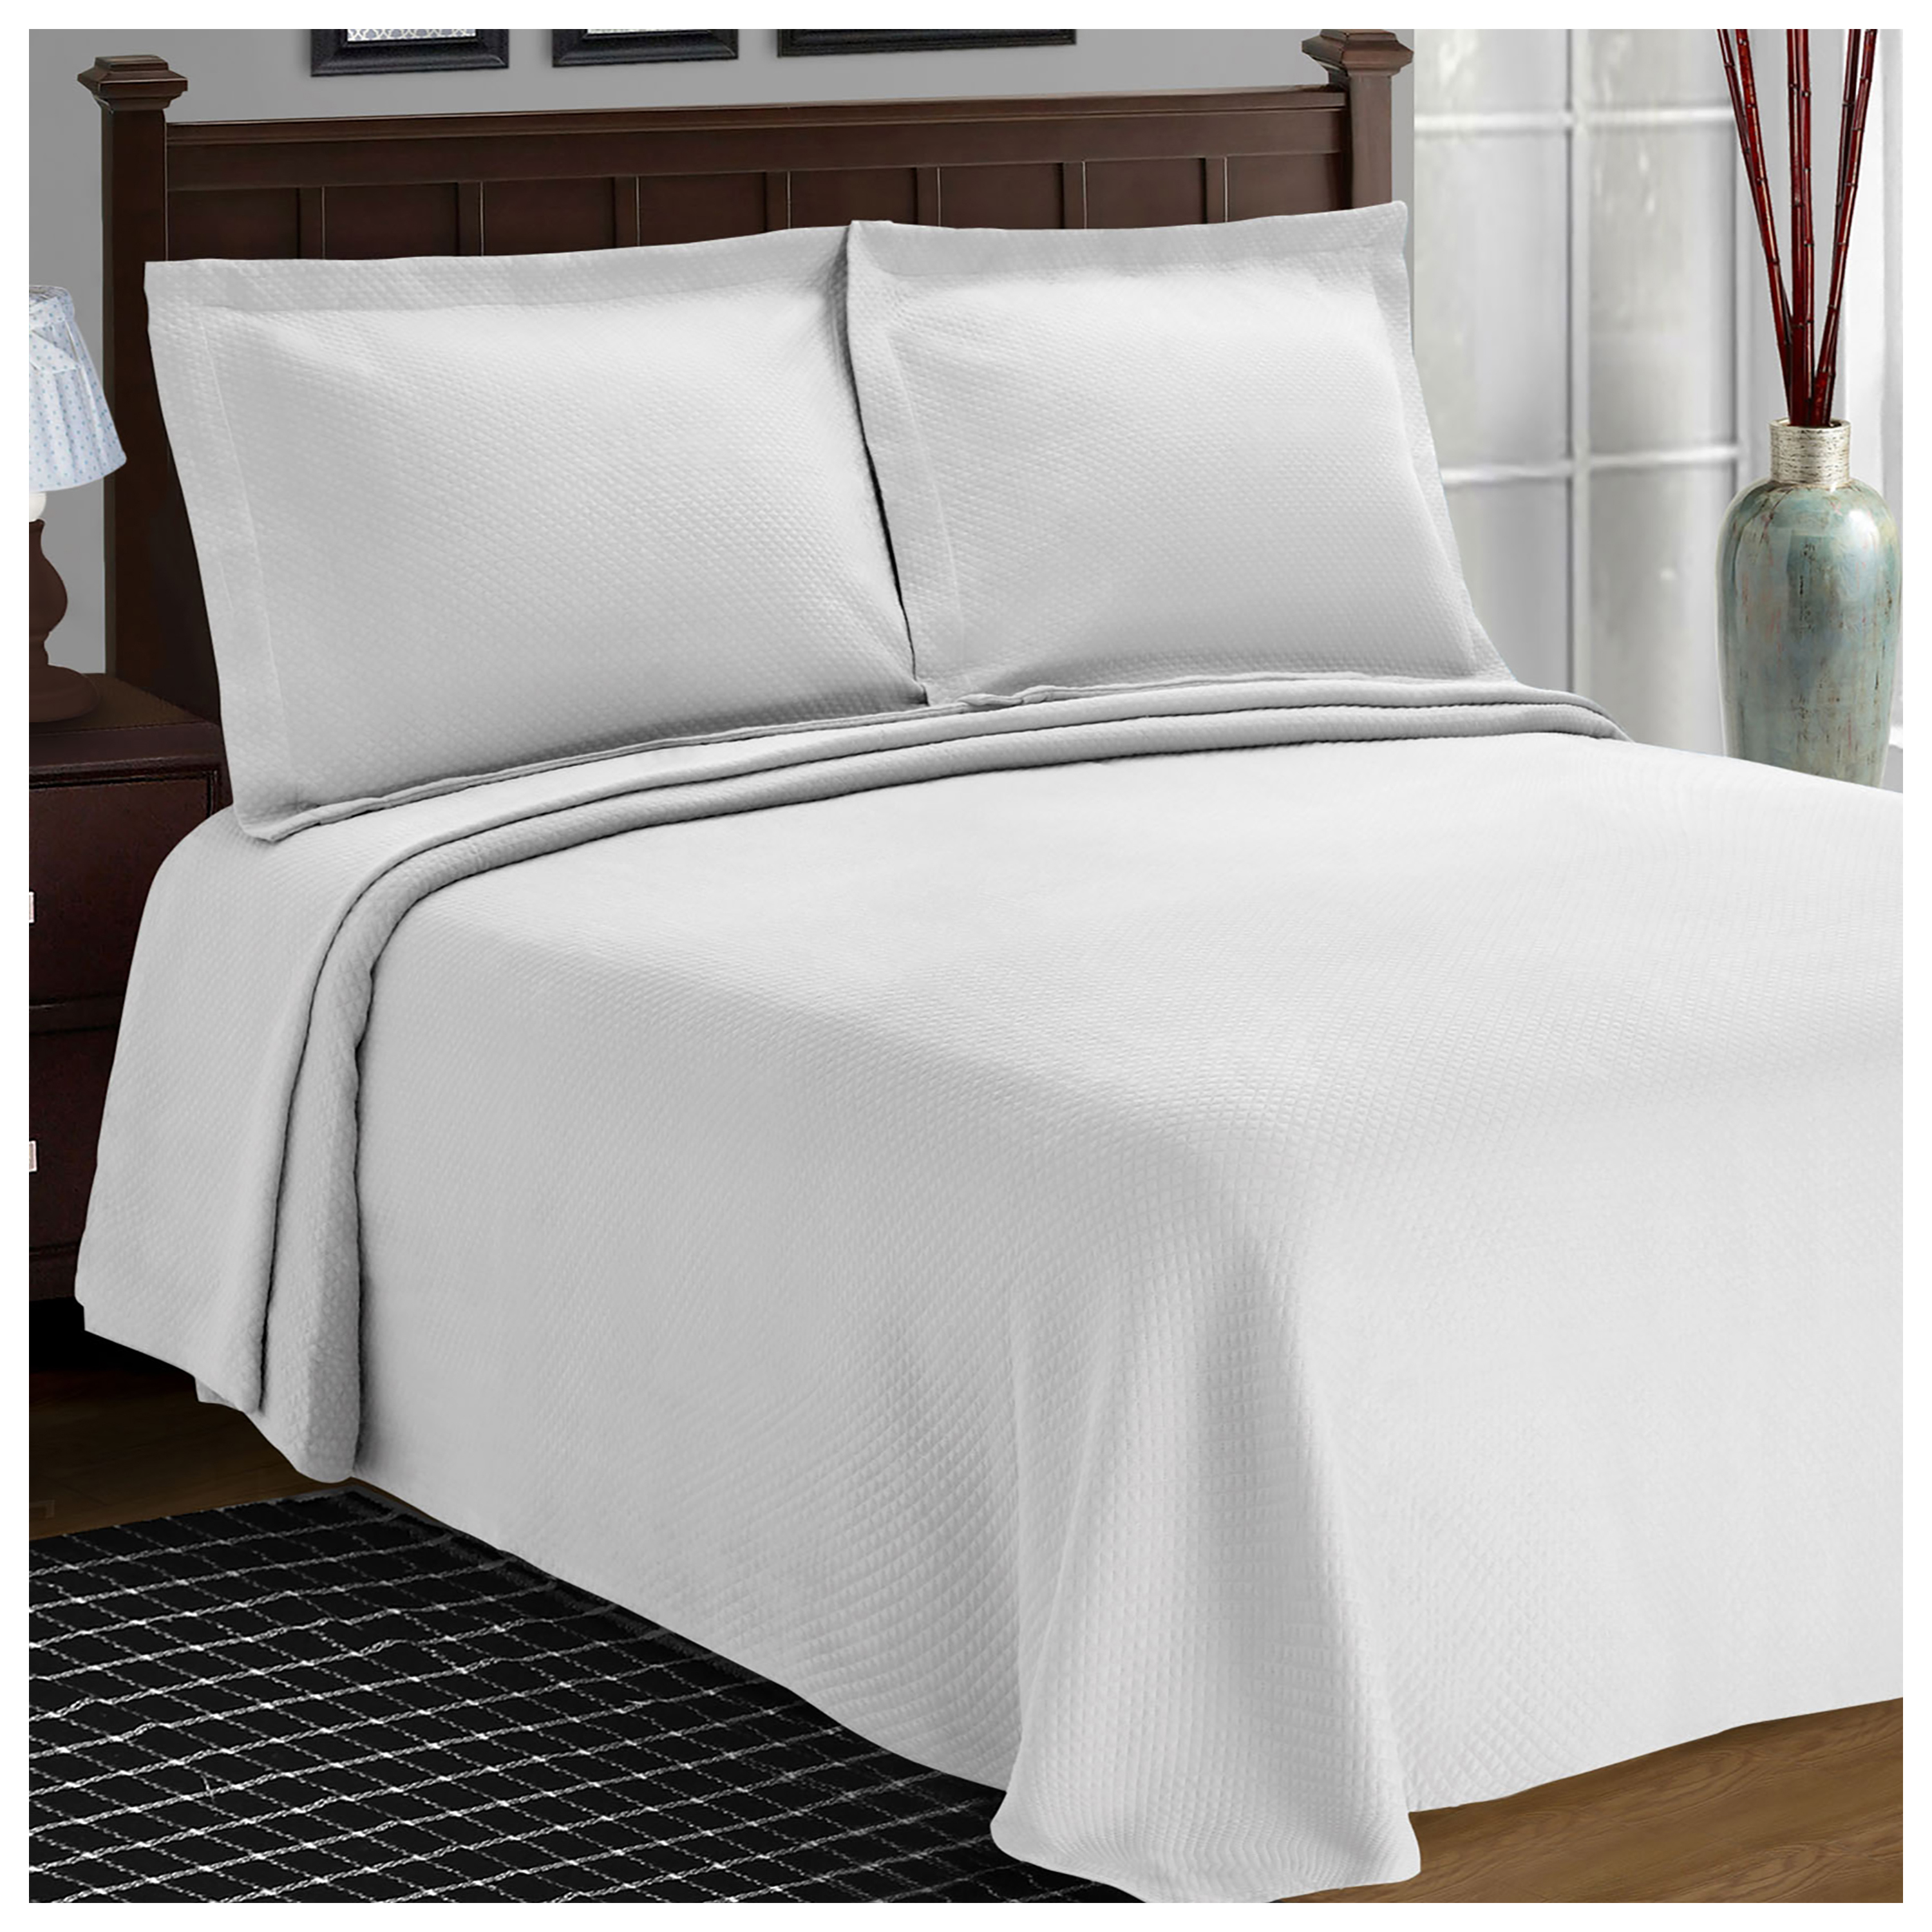 Superior 100 Percent Cotton Solitaire Matelasse Bedspread